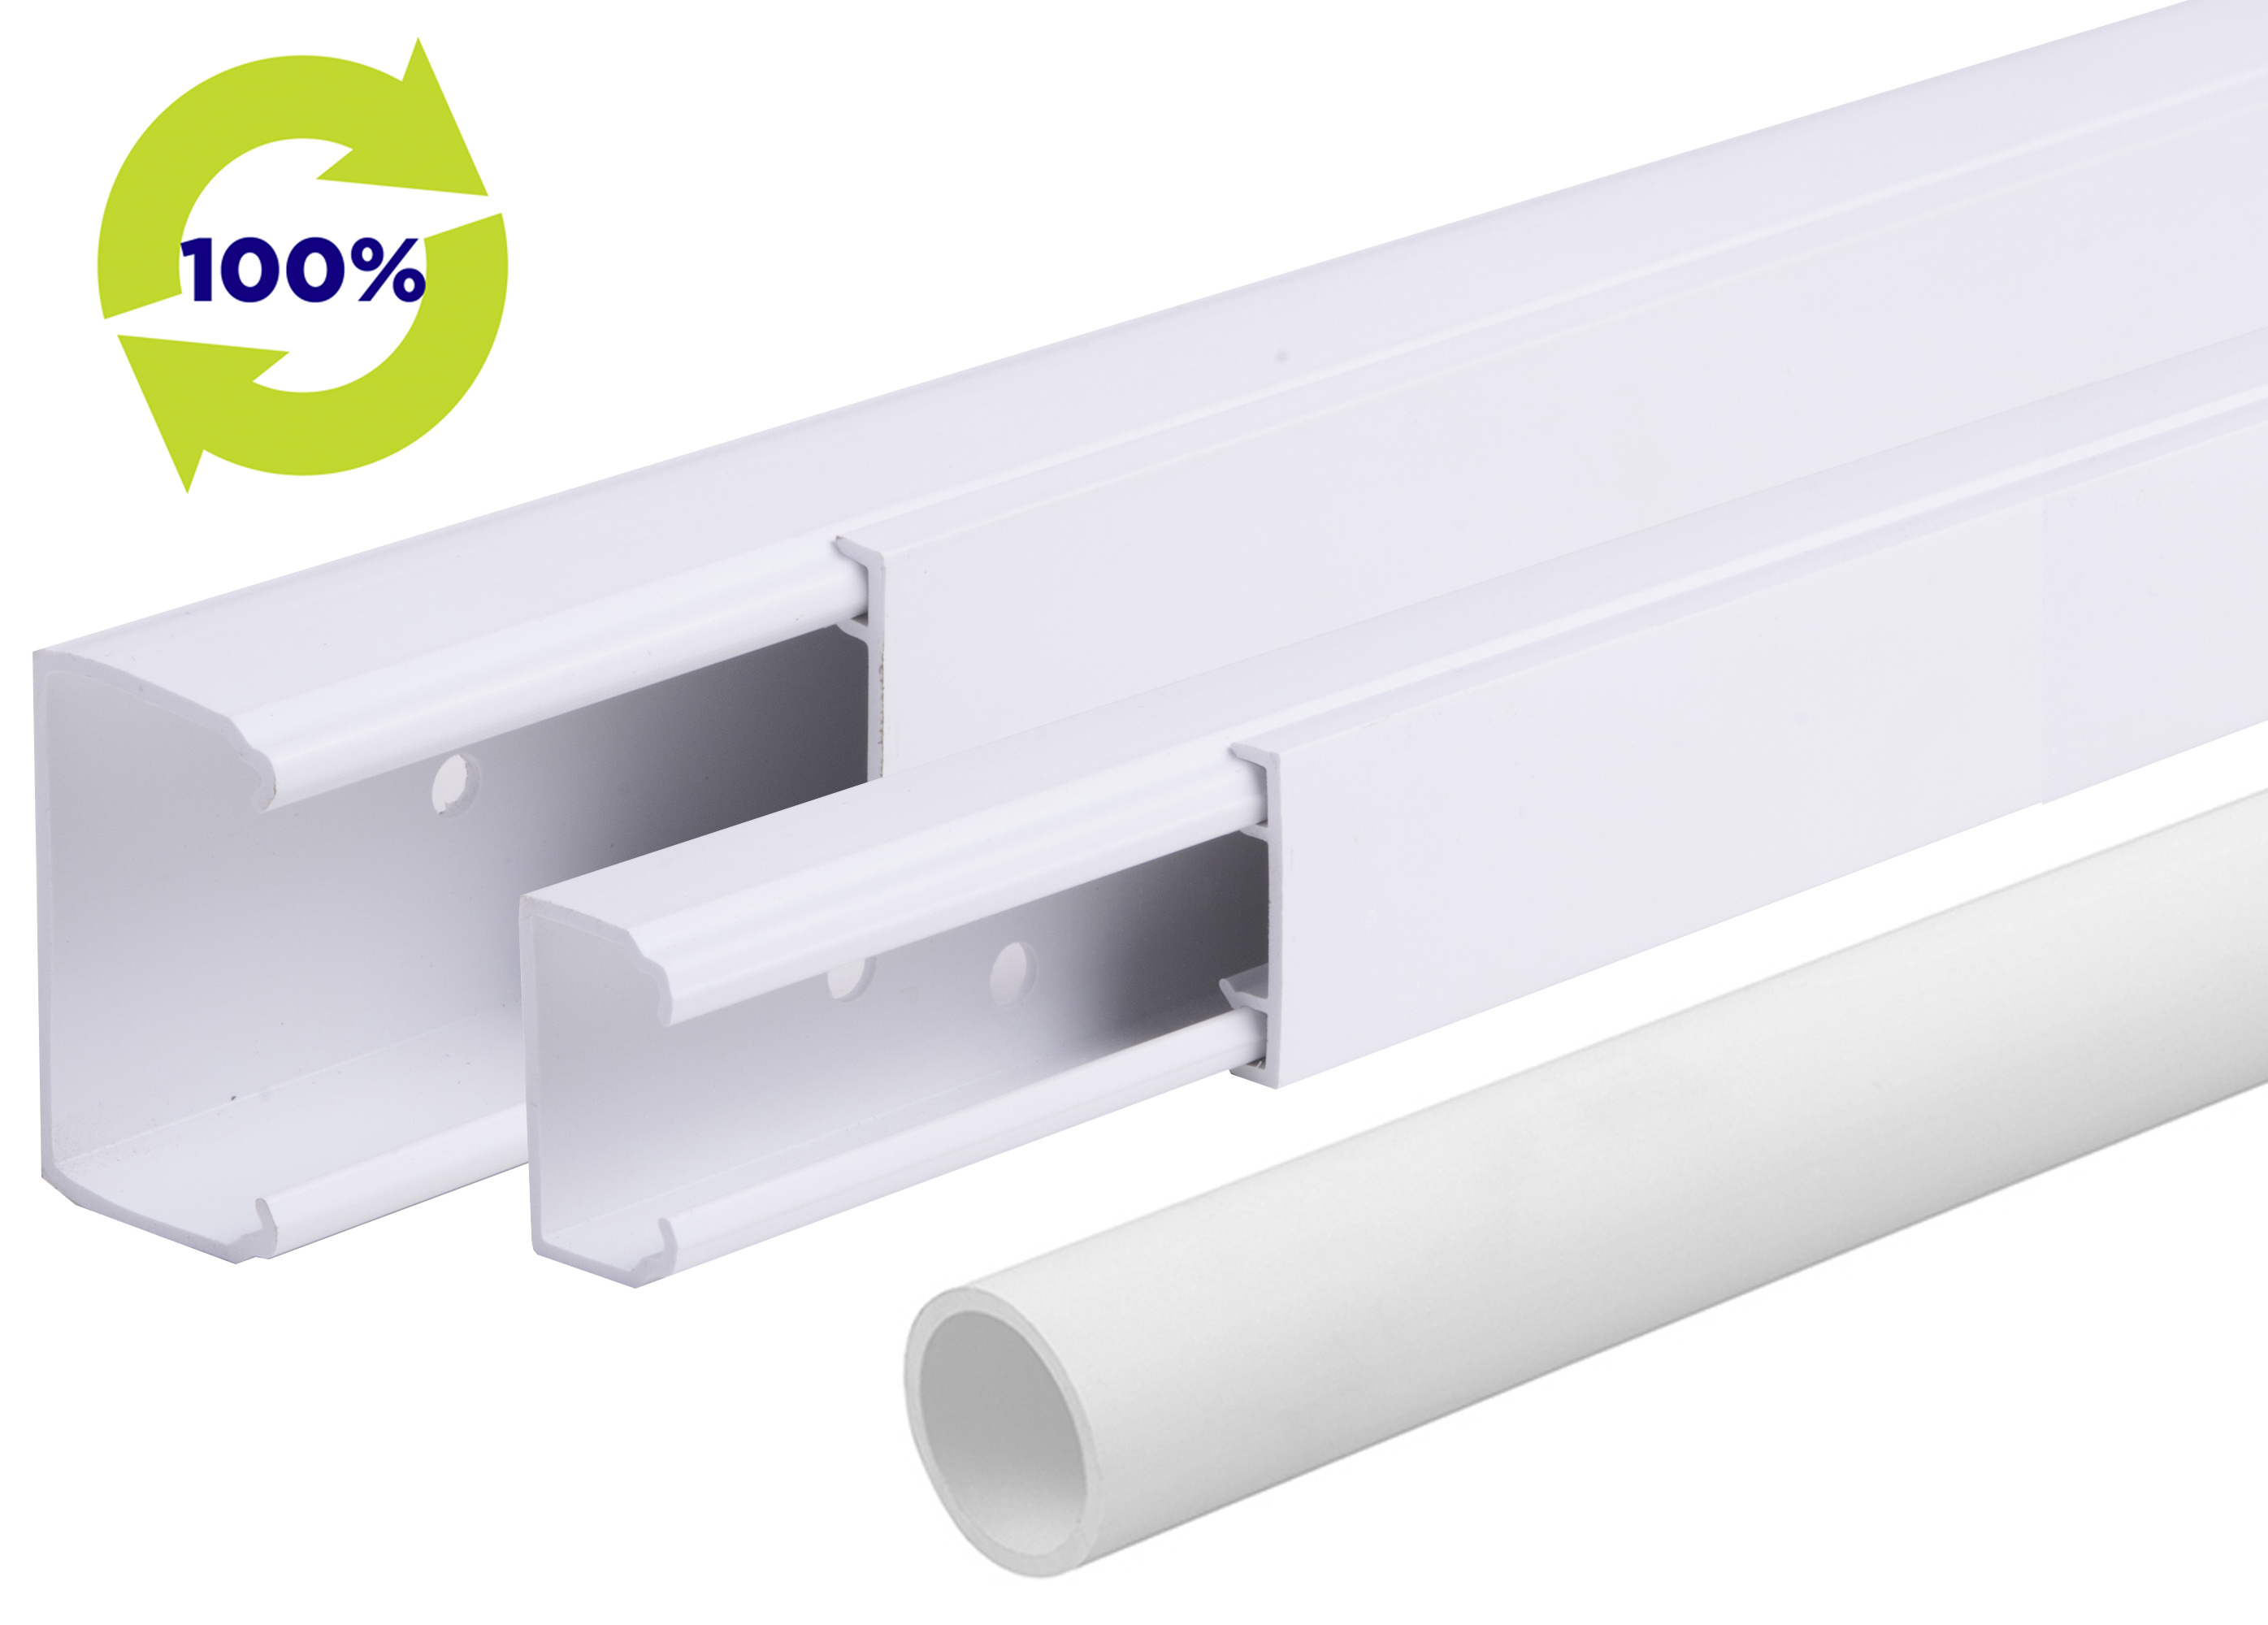 our_white_conduit_mini_and_maxi_trunking_lengths_are_manufactured_from_100_recycled_pvcu_2791